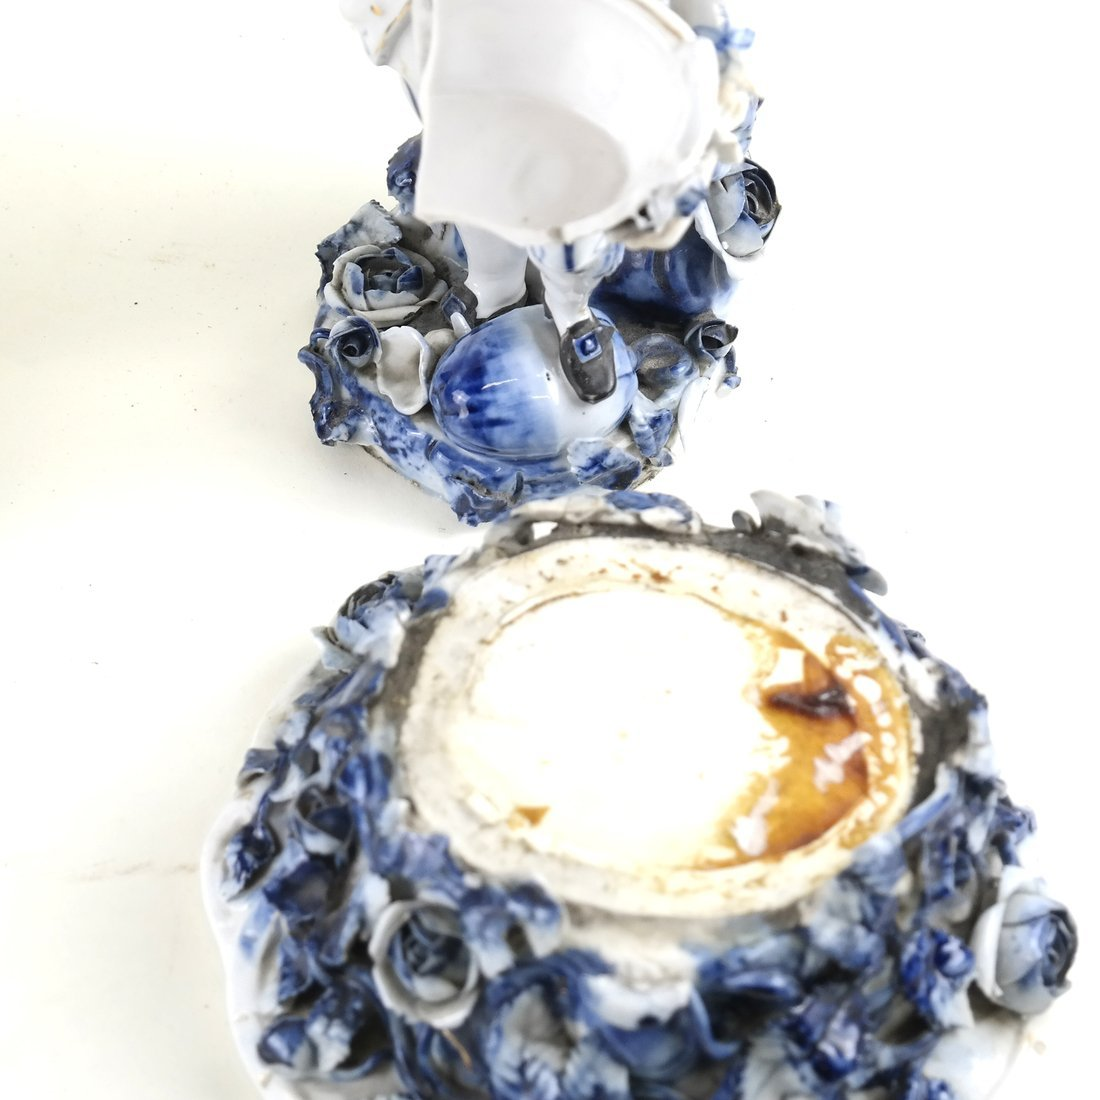 8 Asst. Blue and White Decorated Objects - 3